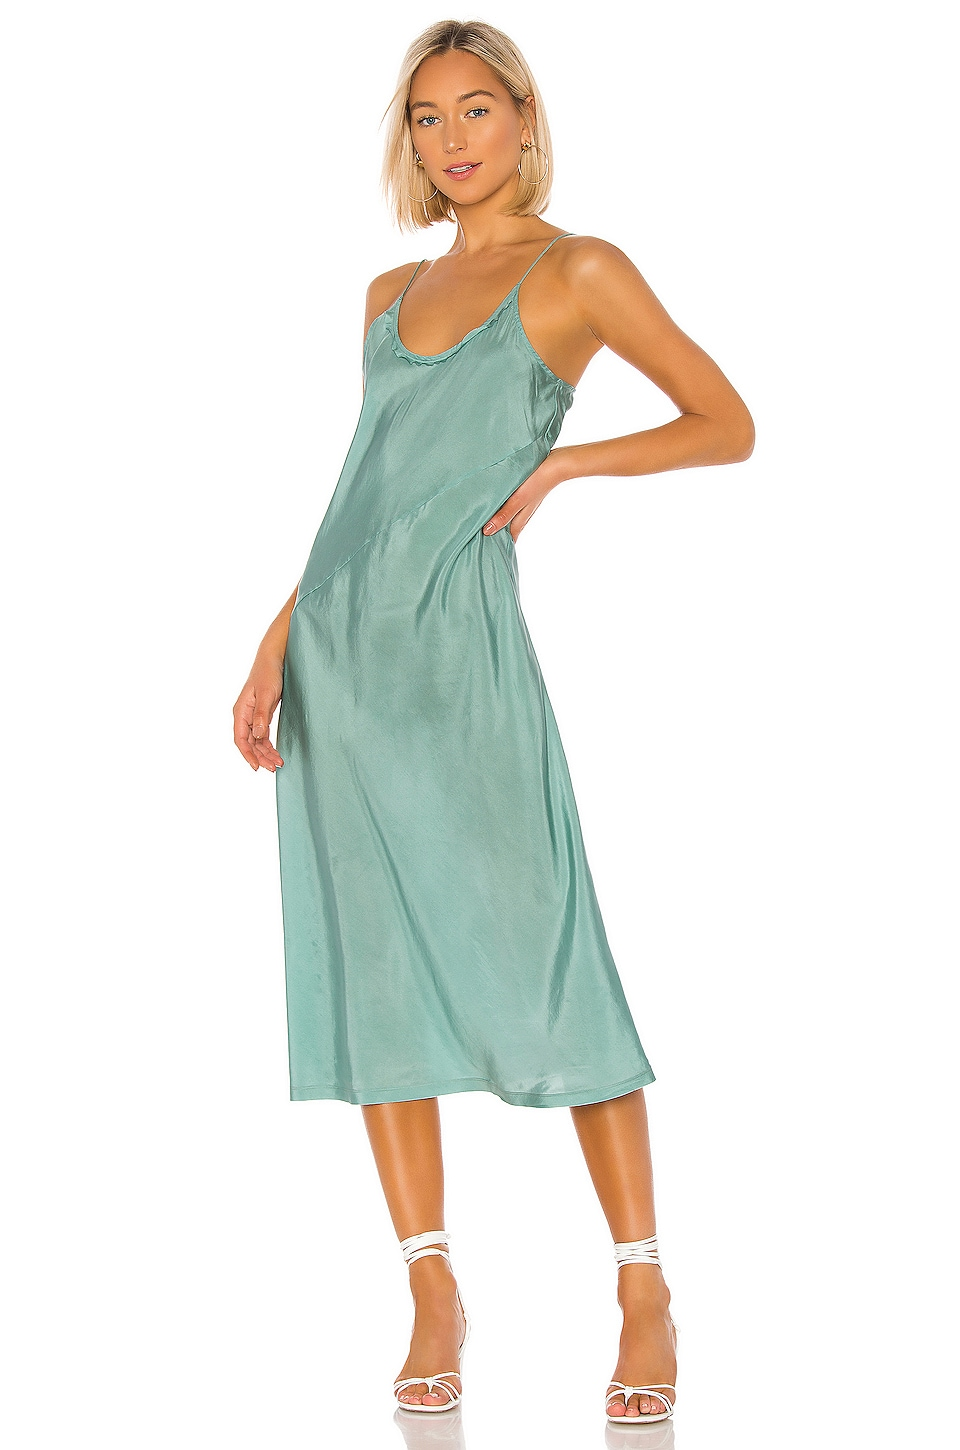 ANAAK Scarlette Slip Dress in Sage